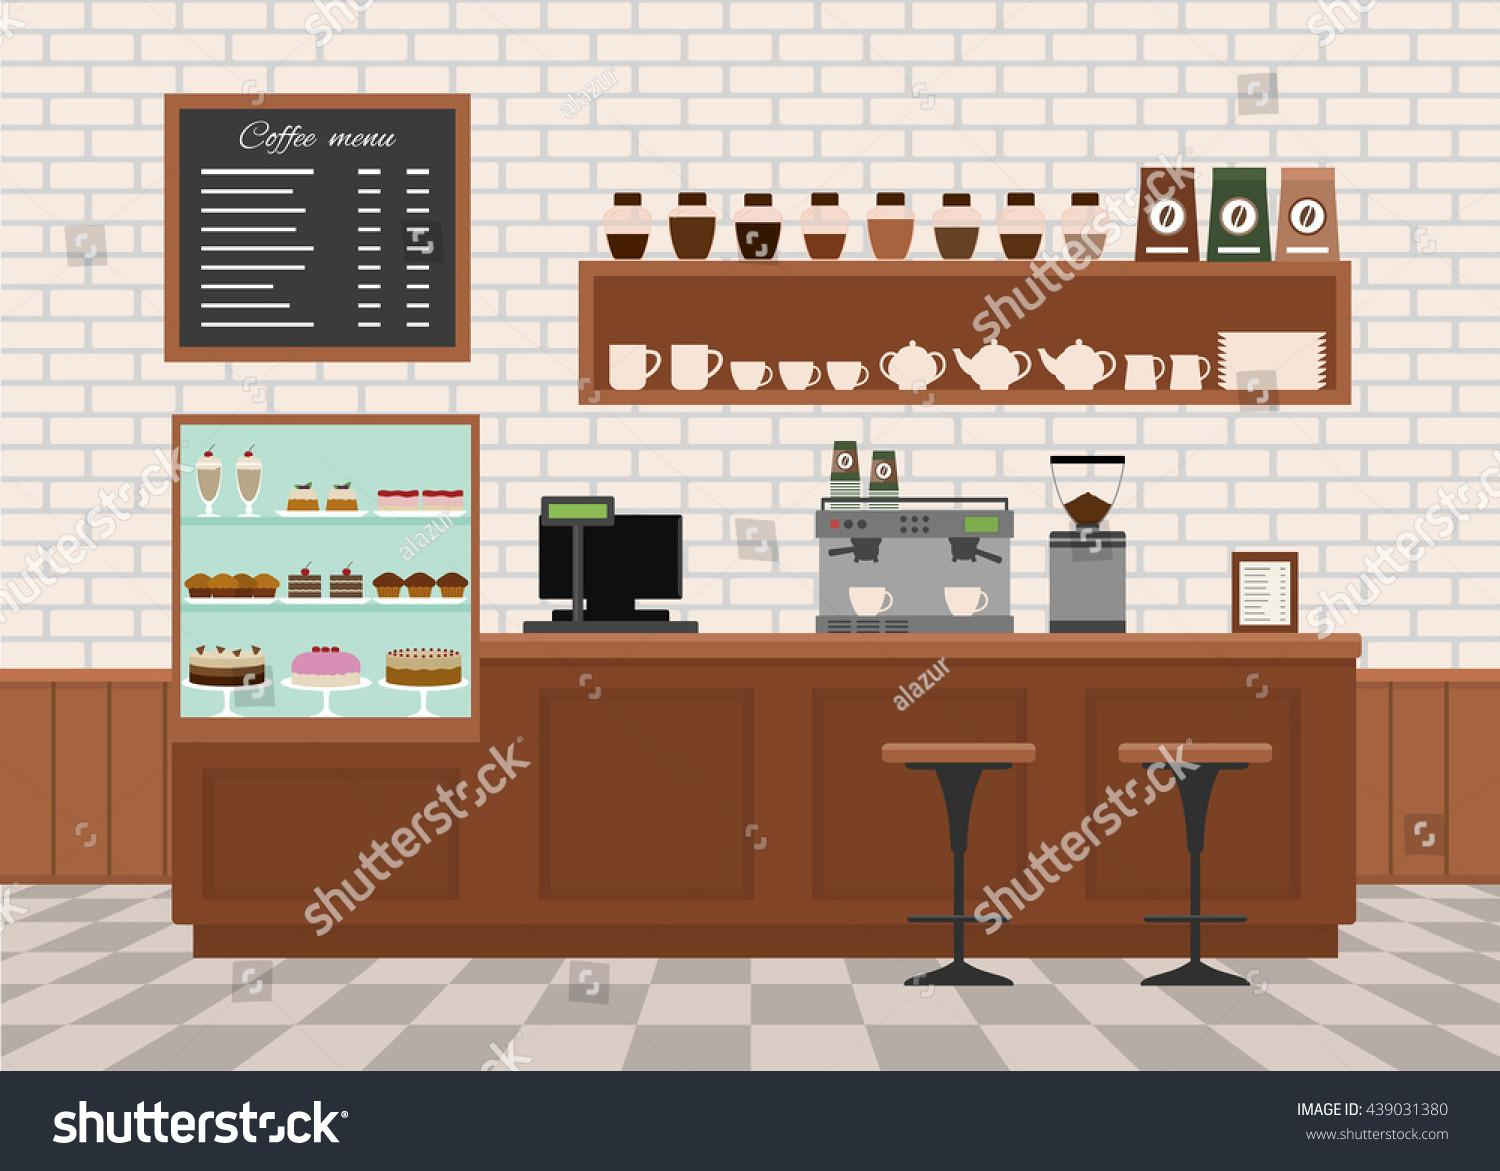 Coffee Shop Interior Flat Design Vector Stock